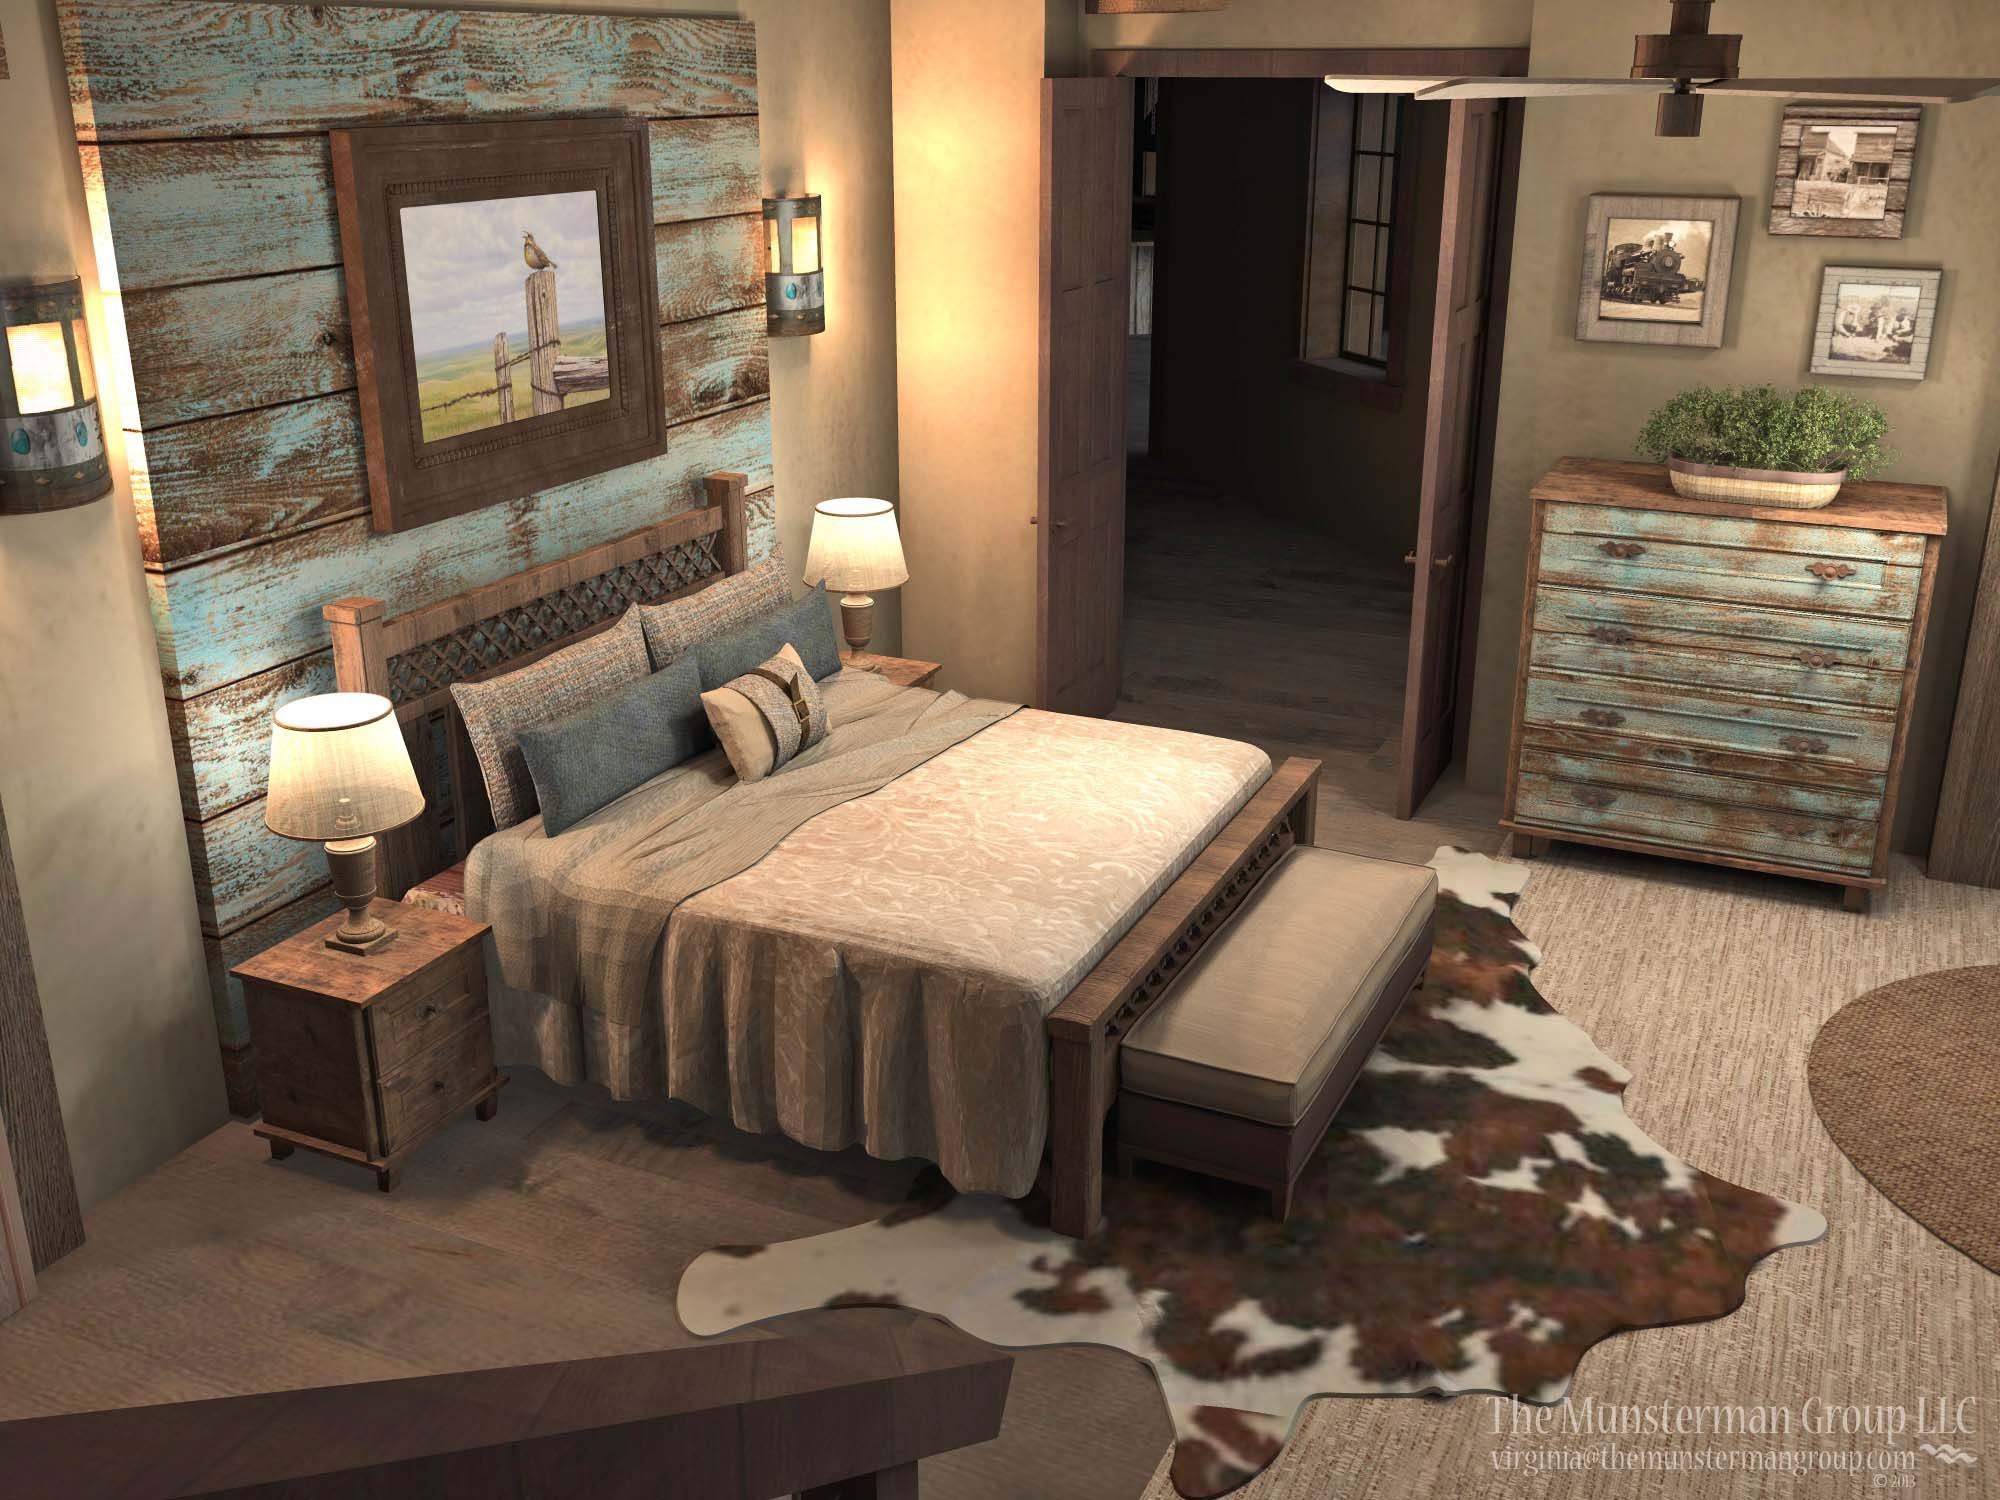 Western bedroom wall decor - Master Bedroom Design Concept Turquoise Wash Barnwood Neutral Palette Browns And Coppers